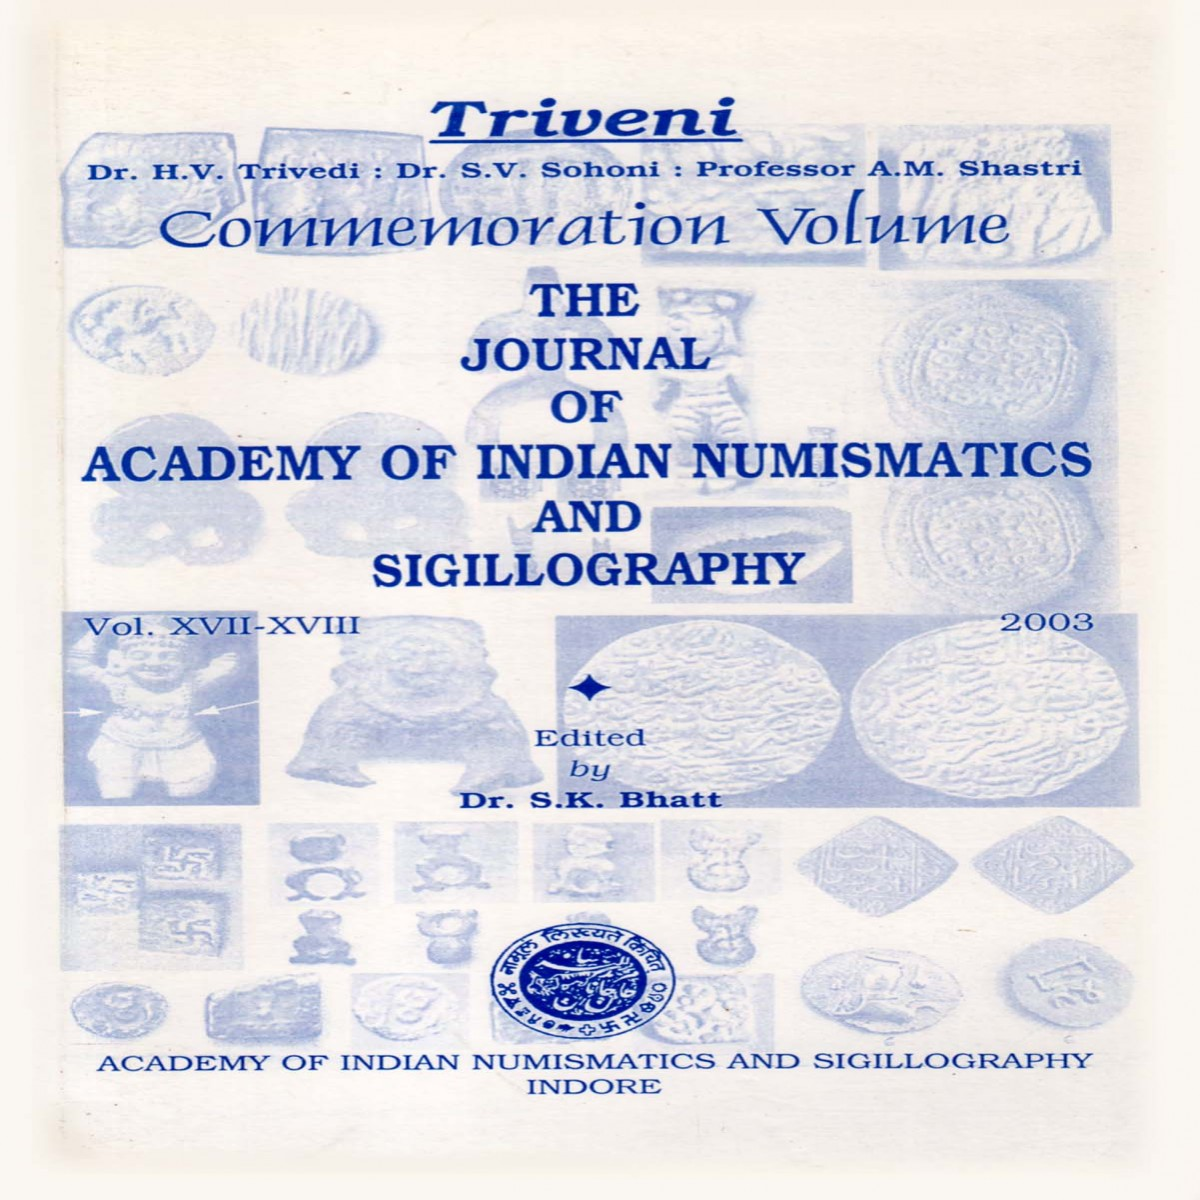 Triveni Commemoration Volume of Dr. S.V. Trivedi; The Journal of Academy of Indian Numismatics  and Sigillography VOL. XVII-XVIII